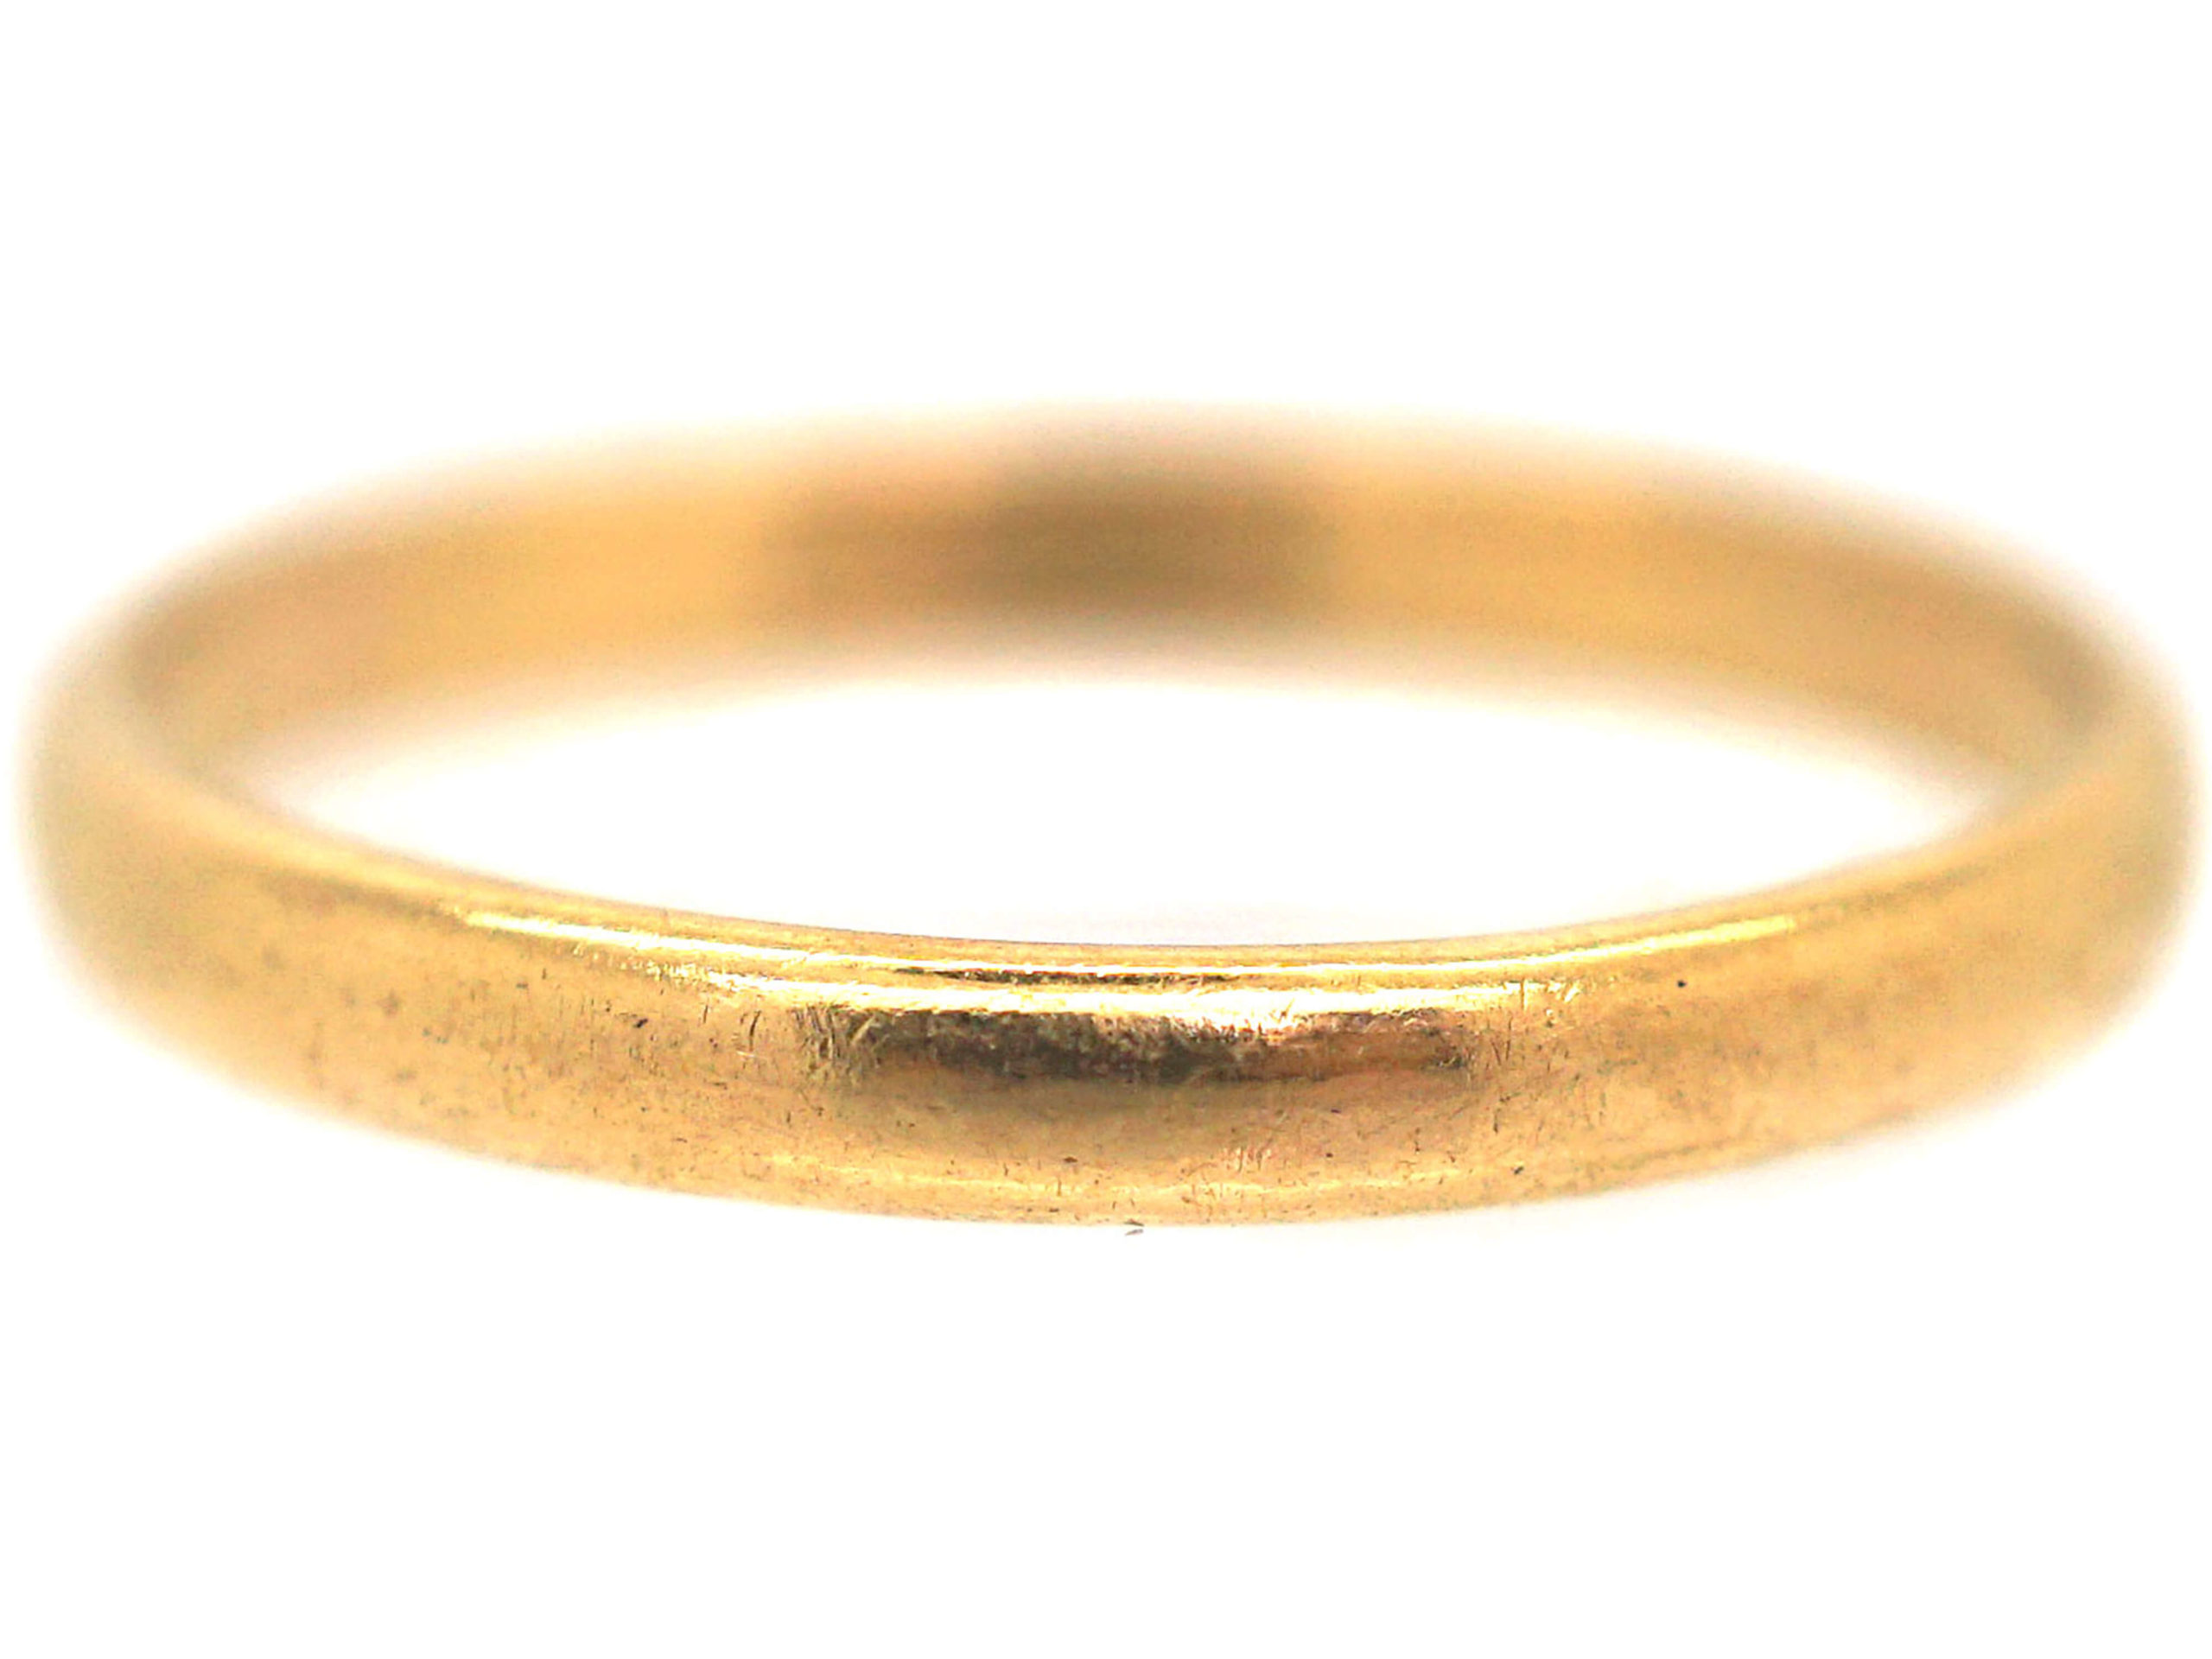 22ct Gold Wedding Ring made in 1940